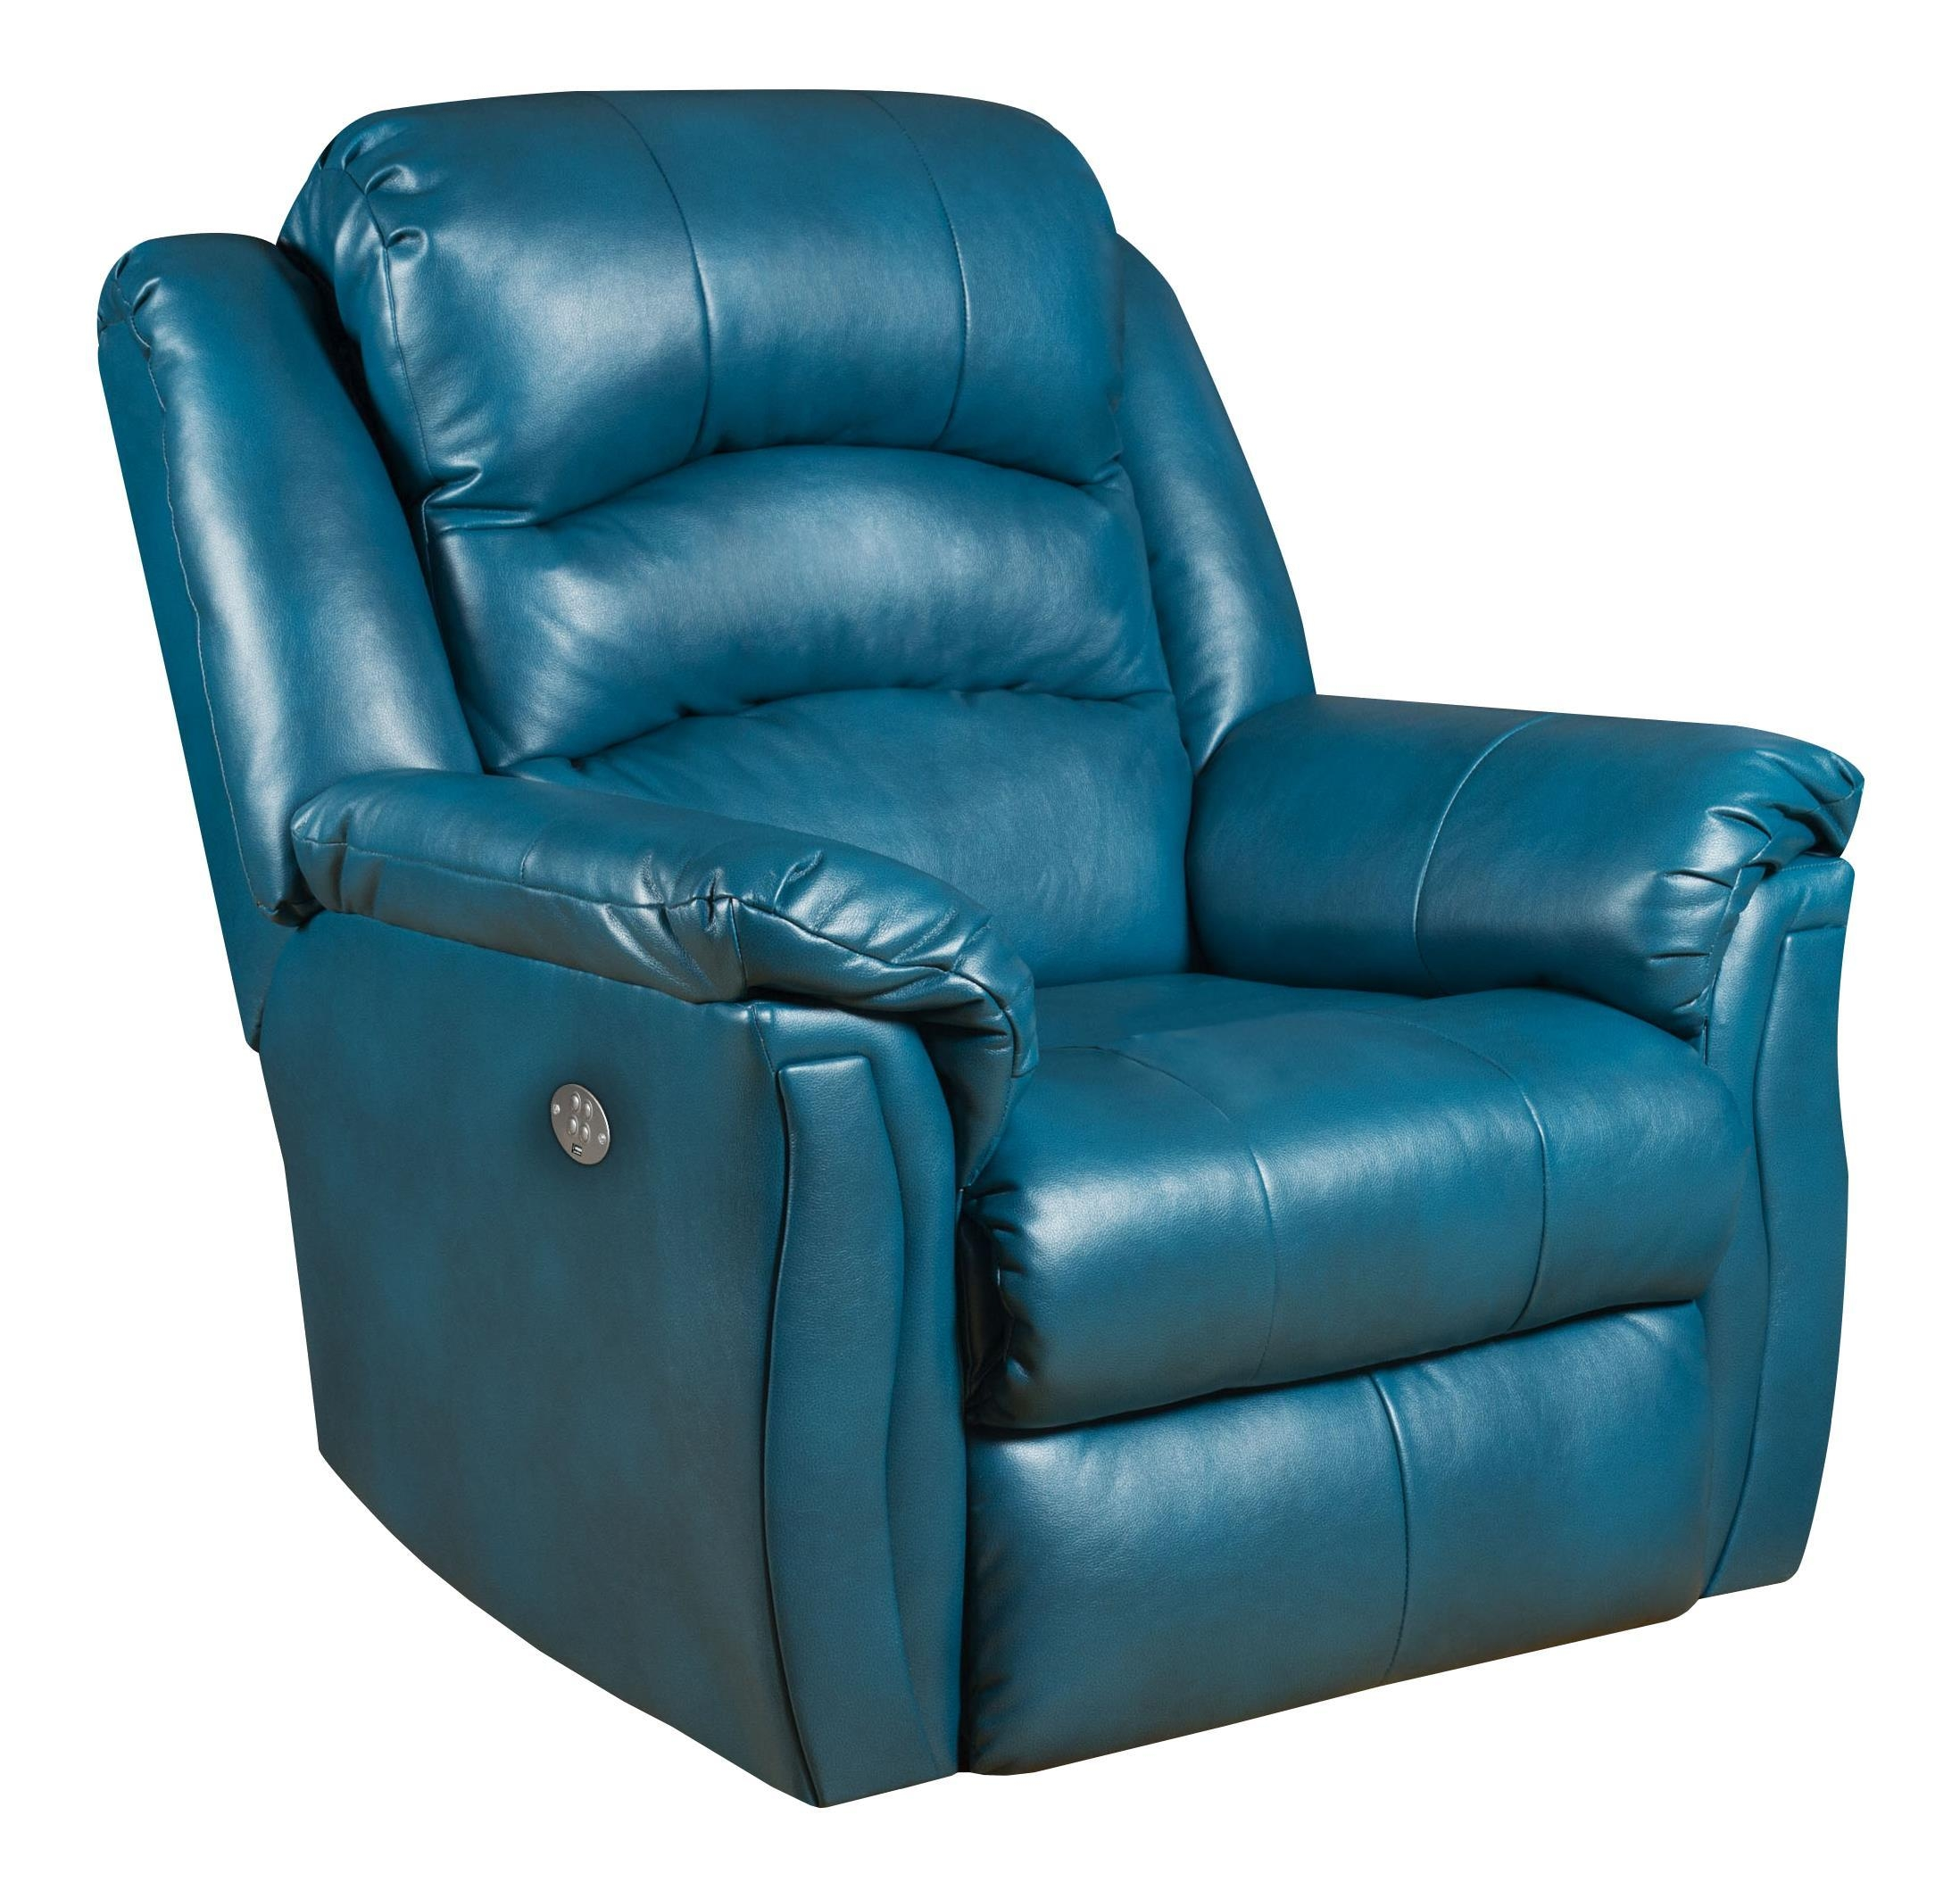 Rv Chair 20 43 Choices Of Rv Recliner Sofas Sofa Ideas